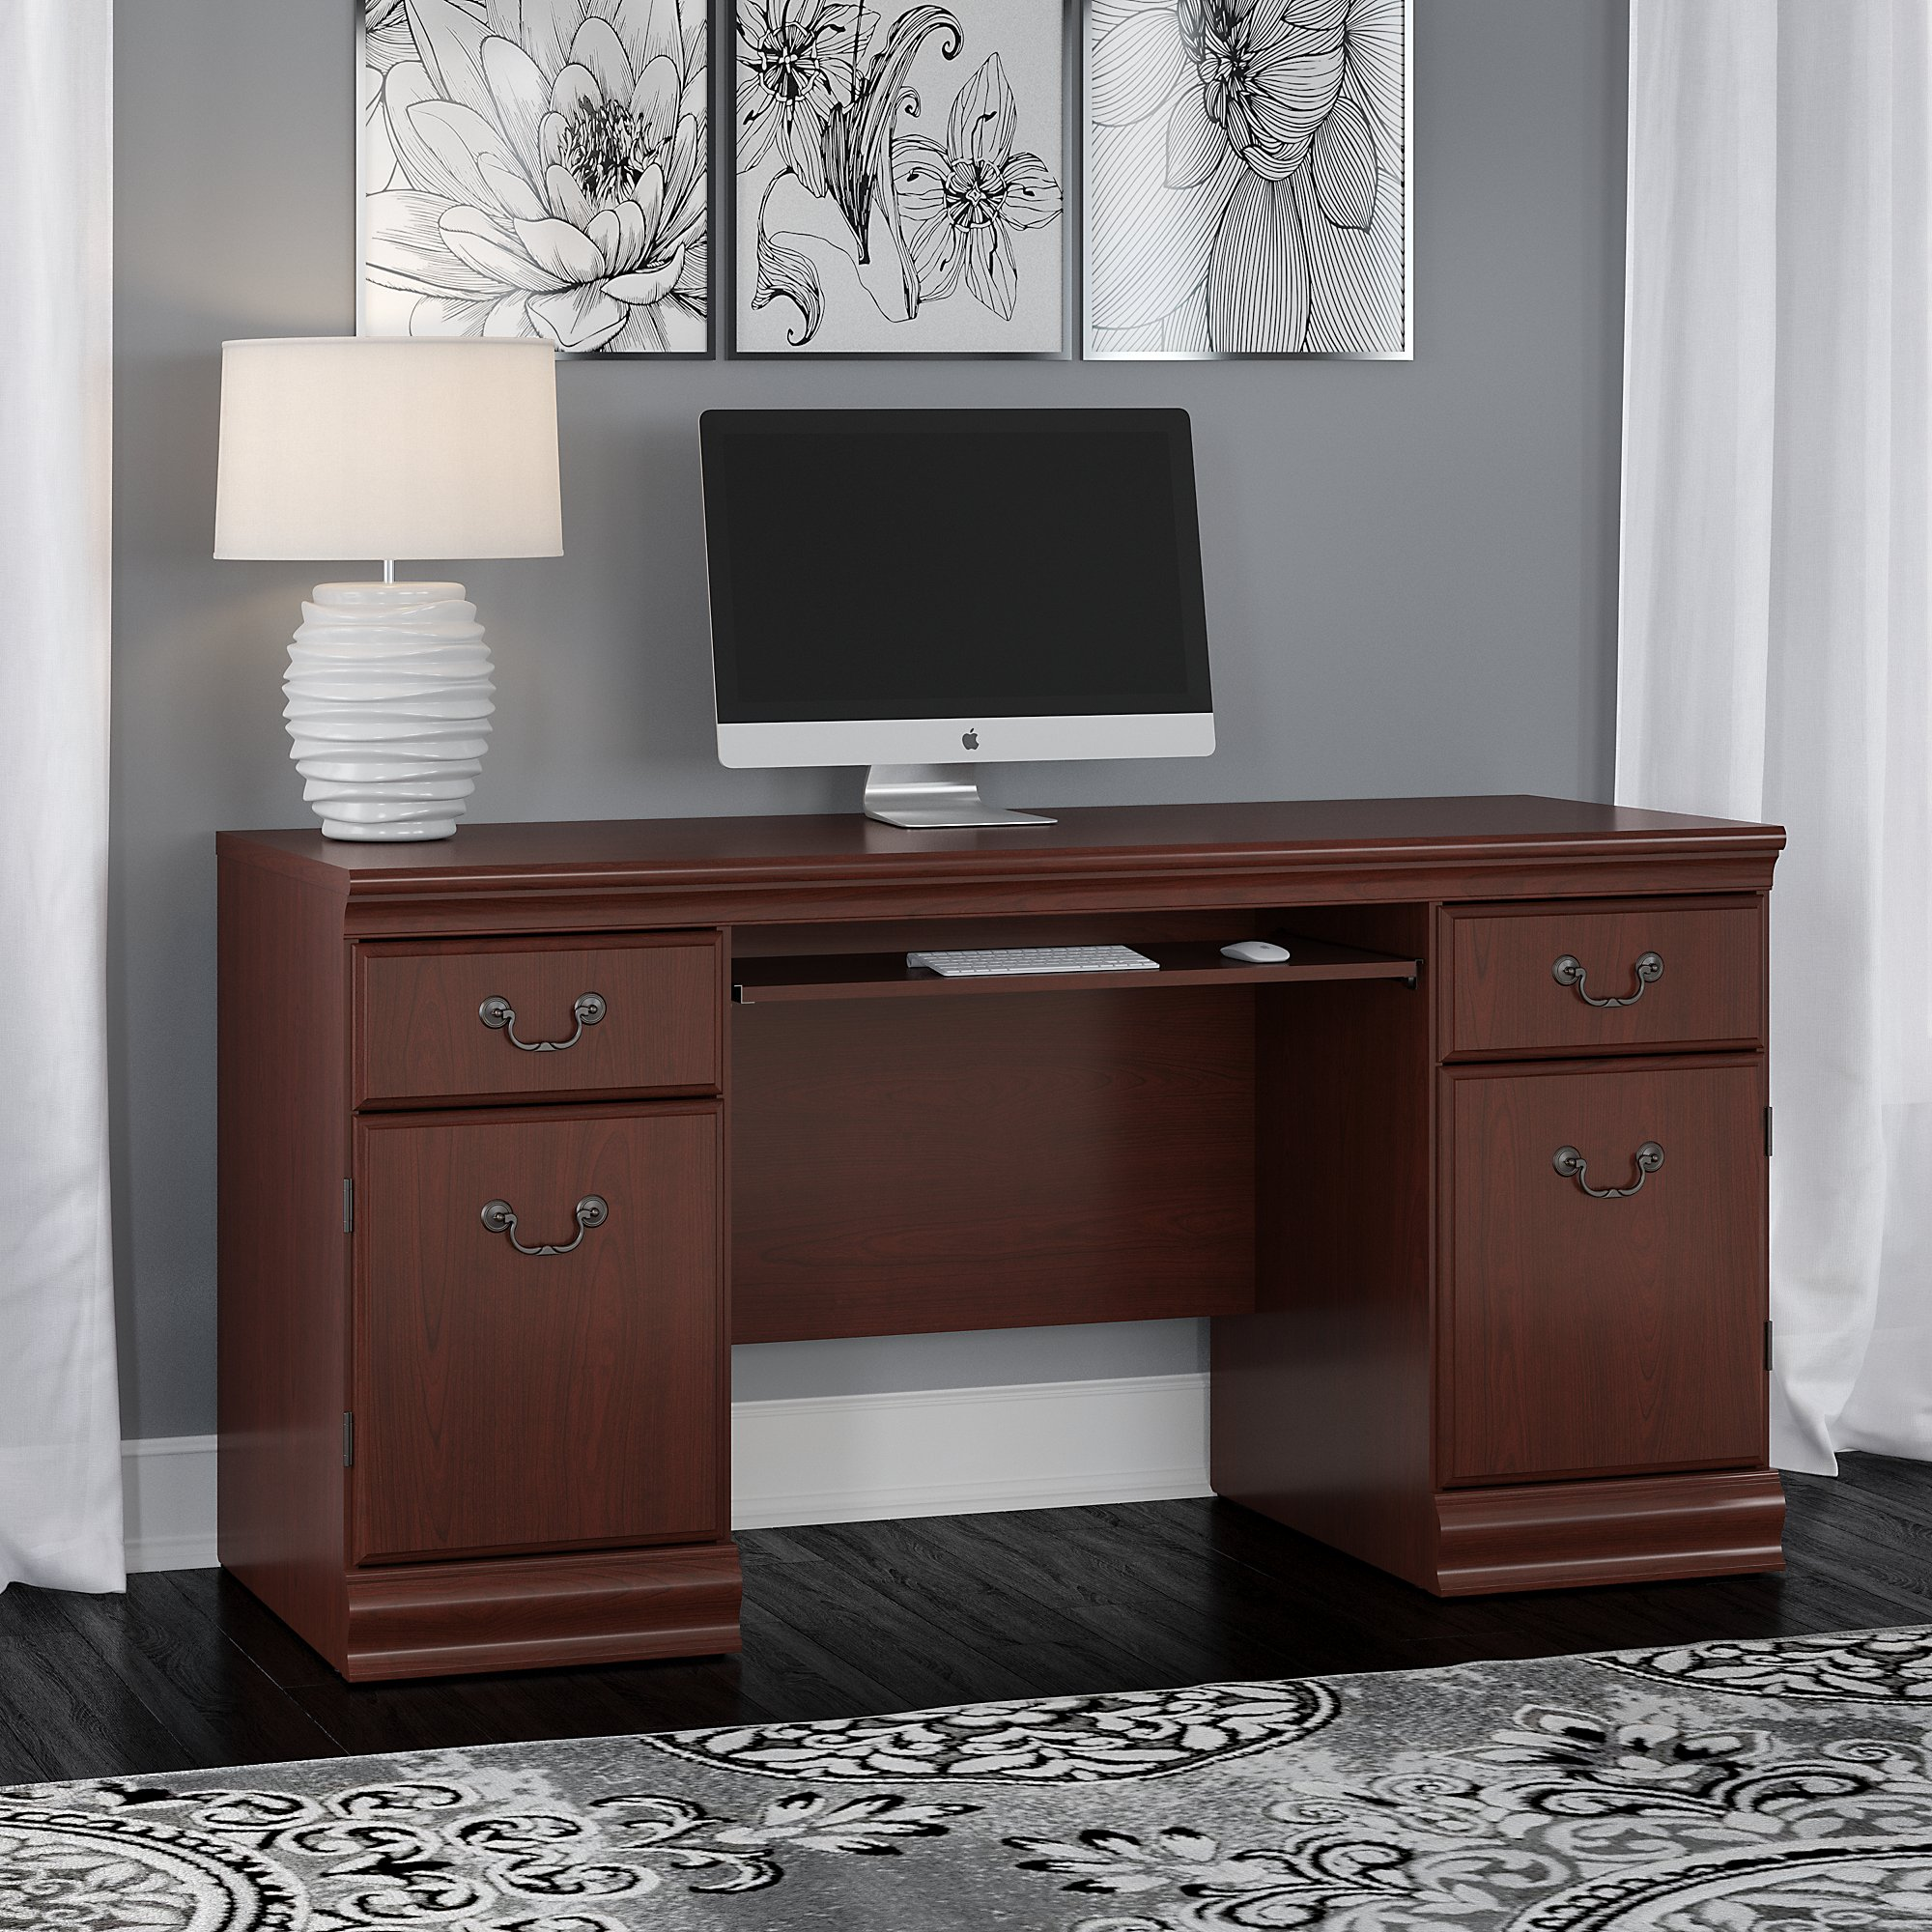 Bush Furniture Birmingham Credenza Desk With Keyboard Tray And Storage In  Harvest Cherry